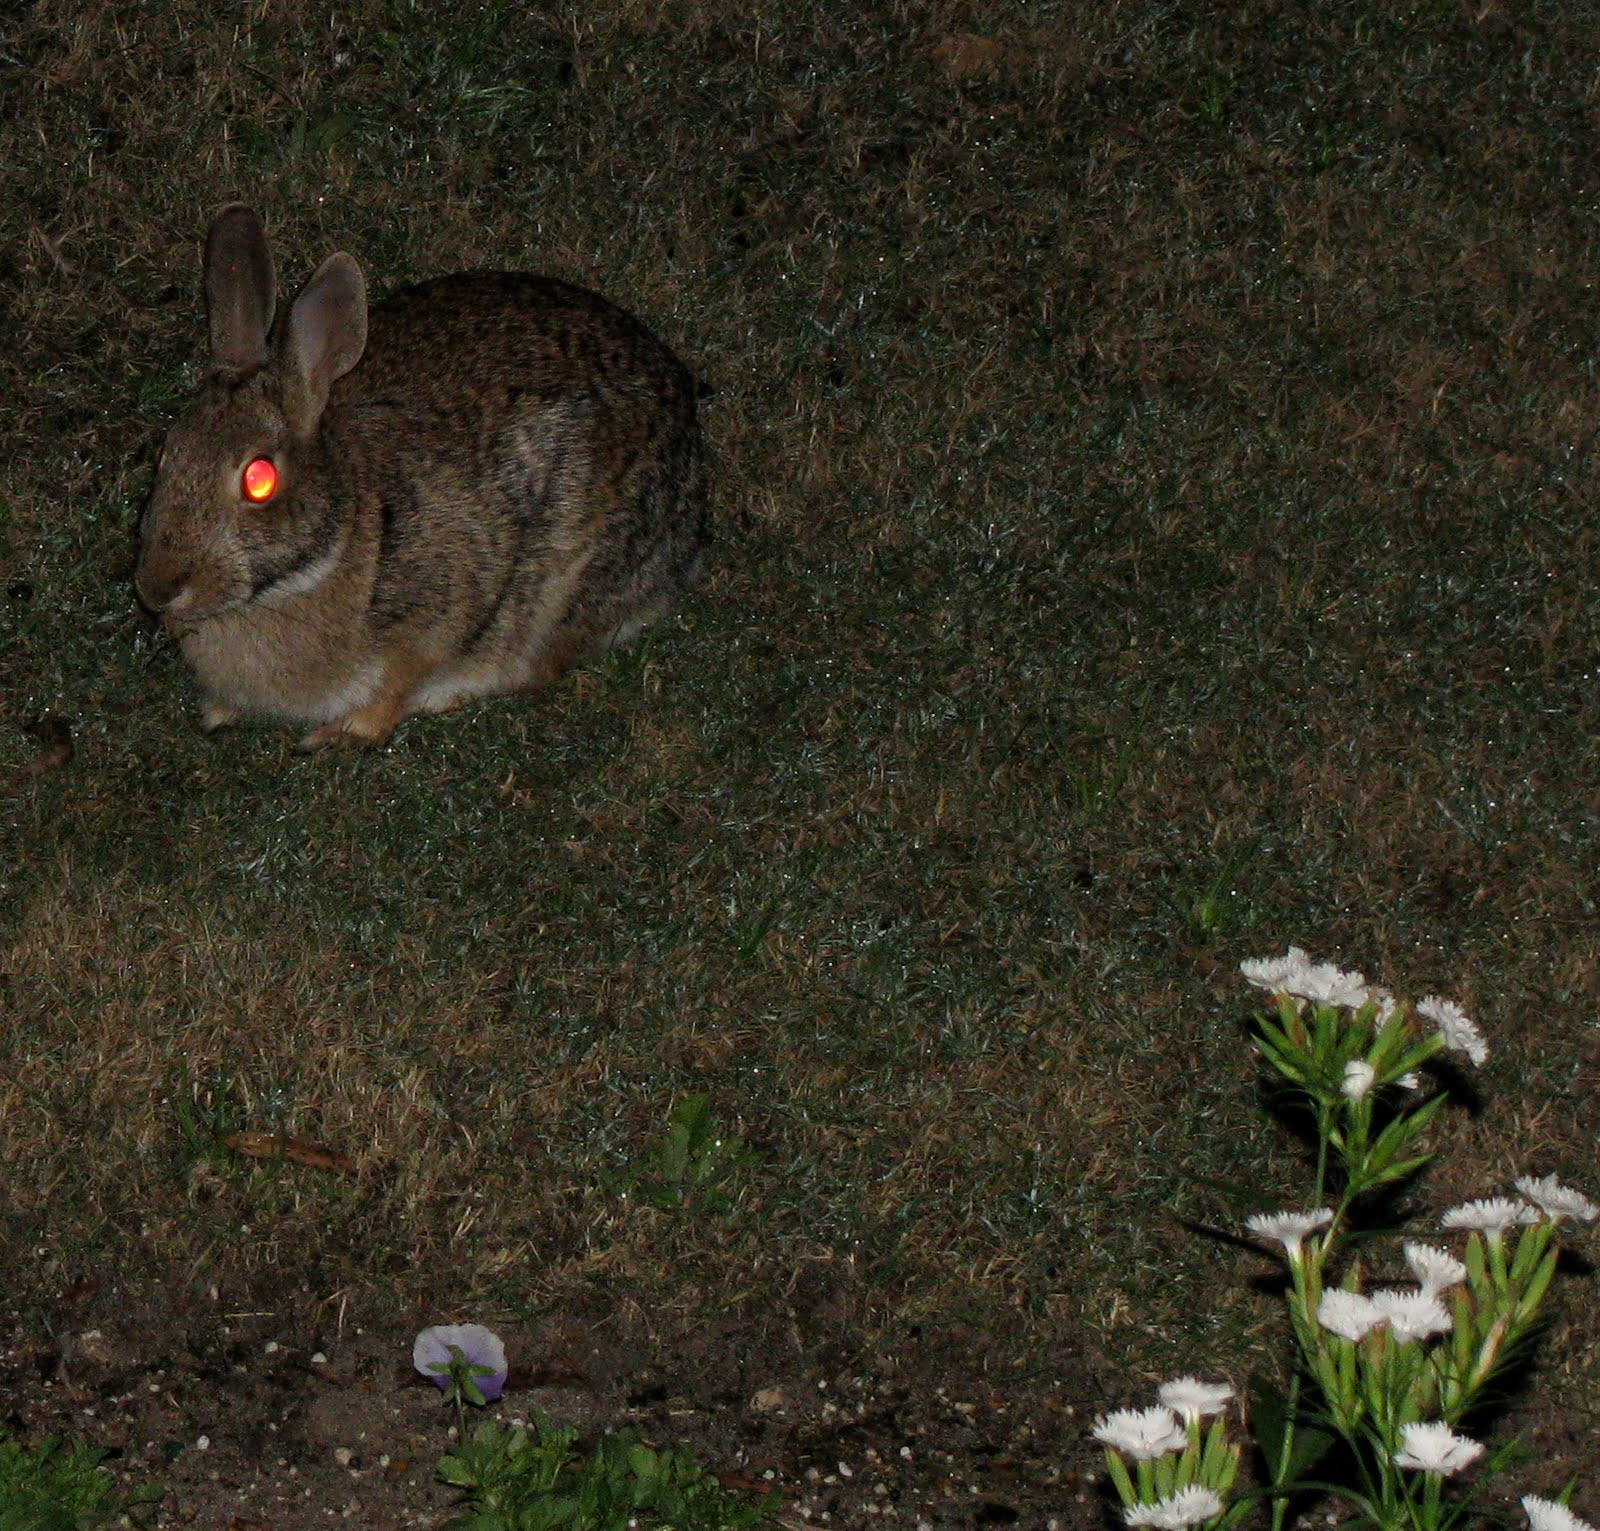 [Bunny-Red-Eyes]